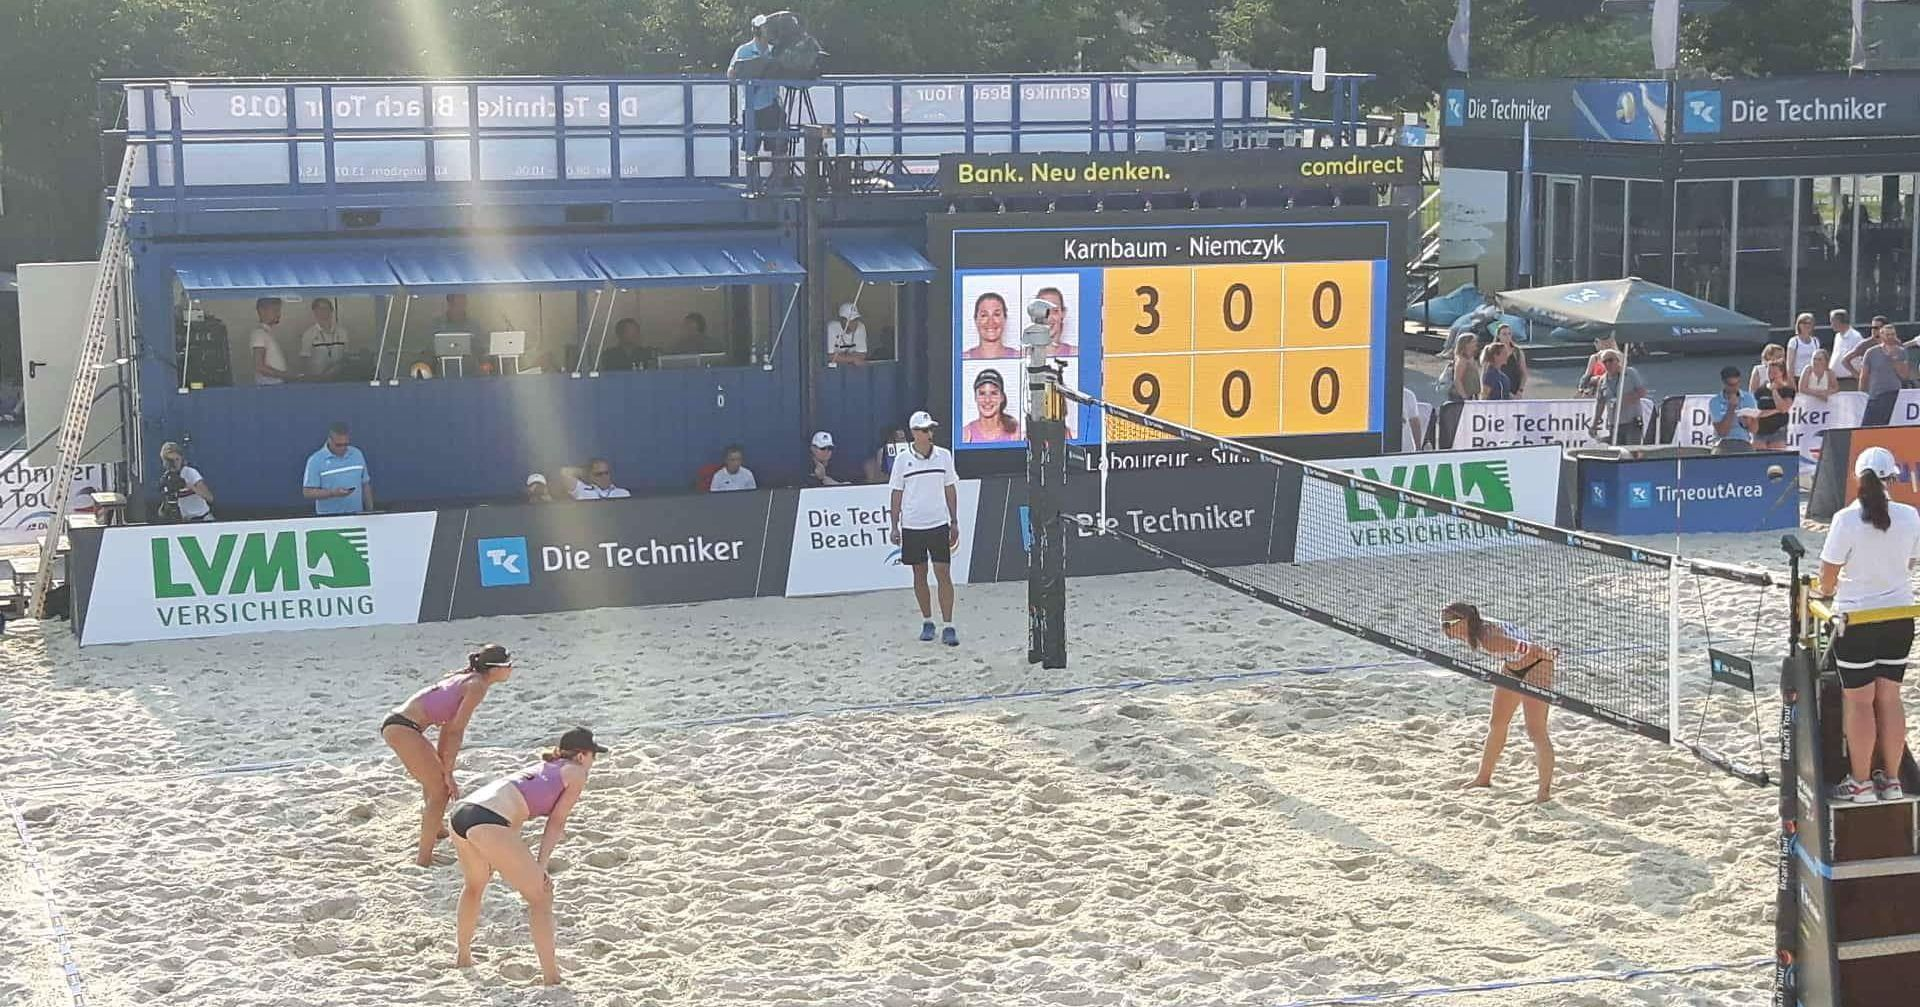 Beachvolleyball-Duo Holtwick / Semmler